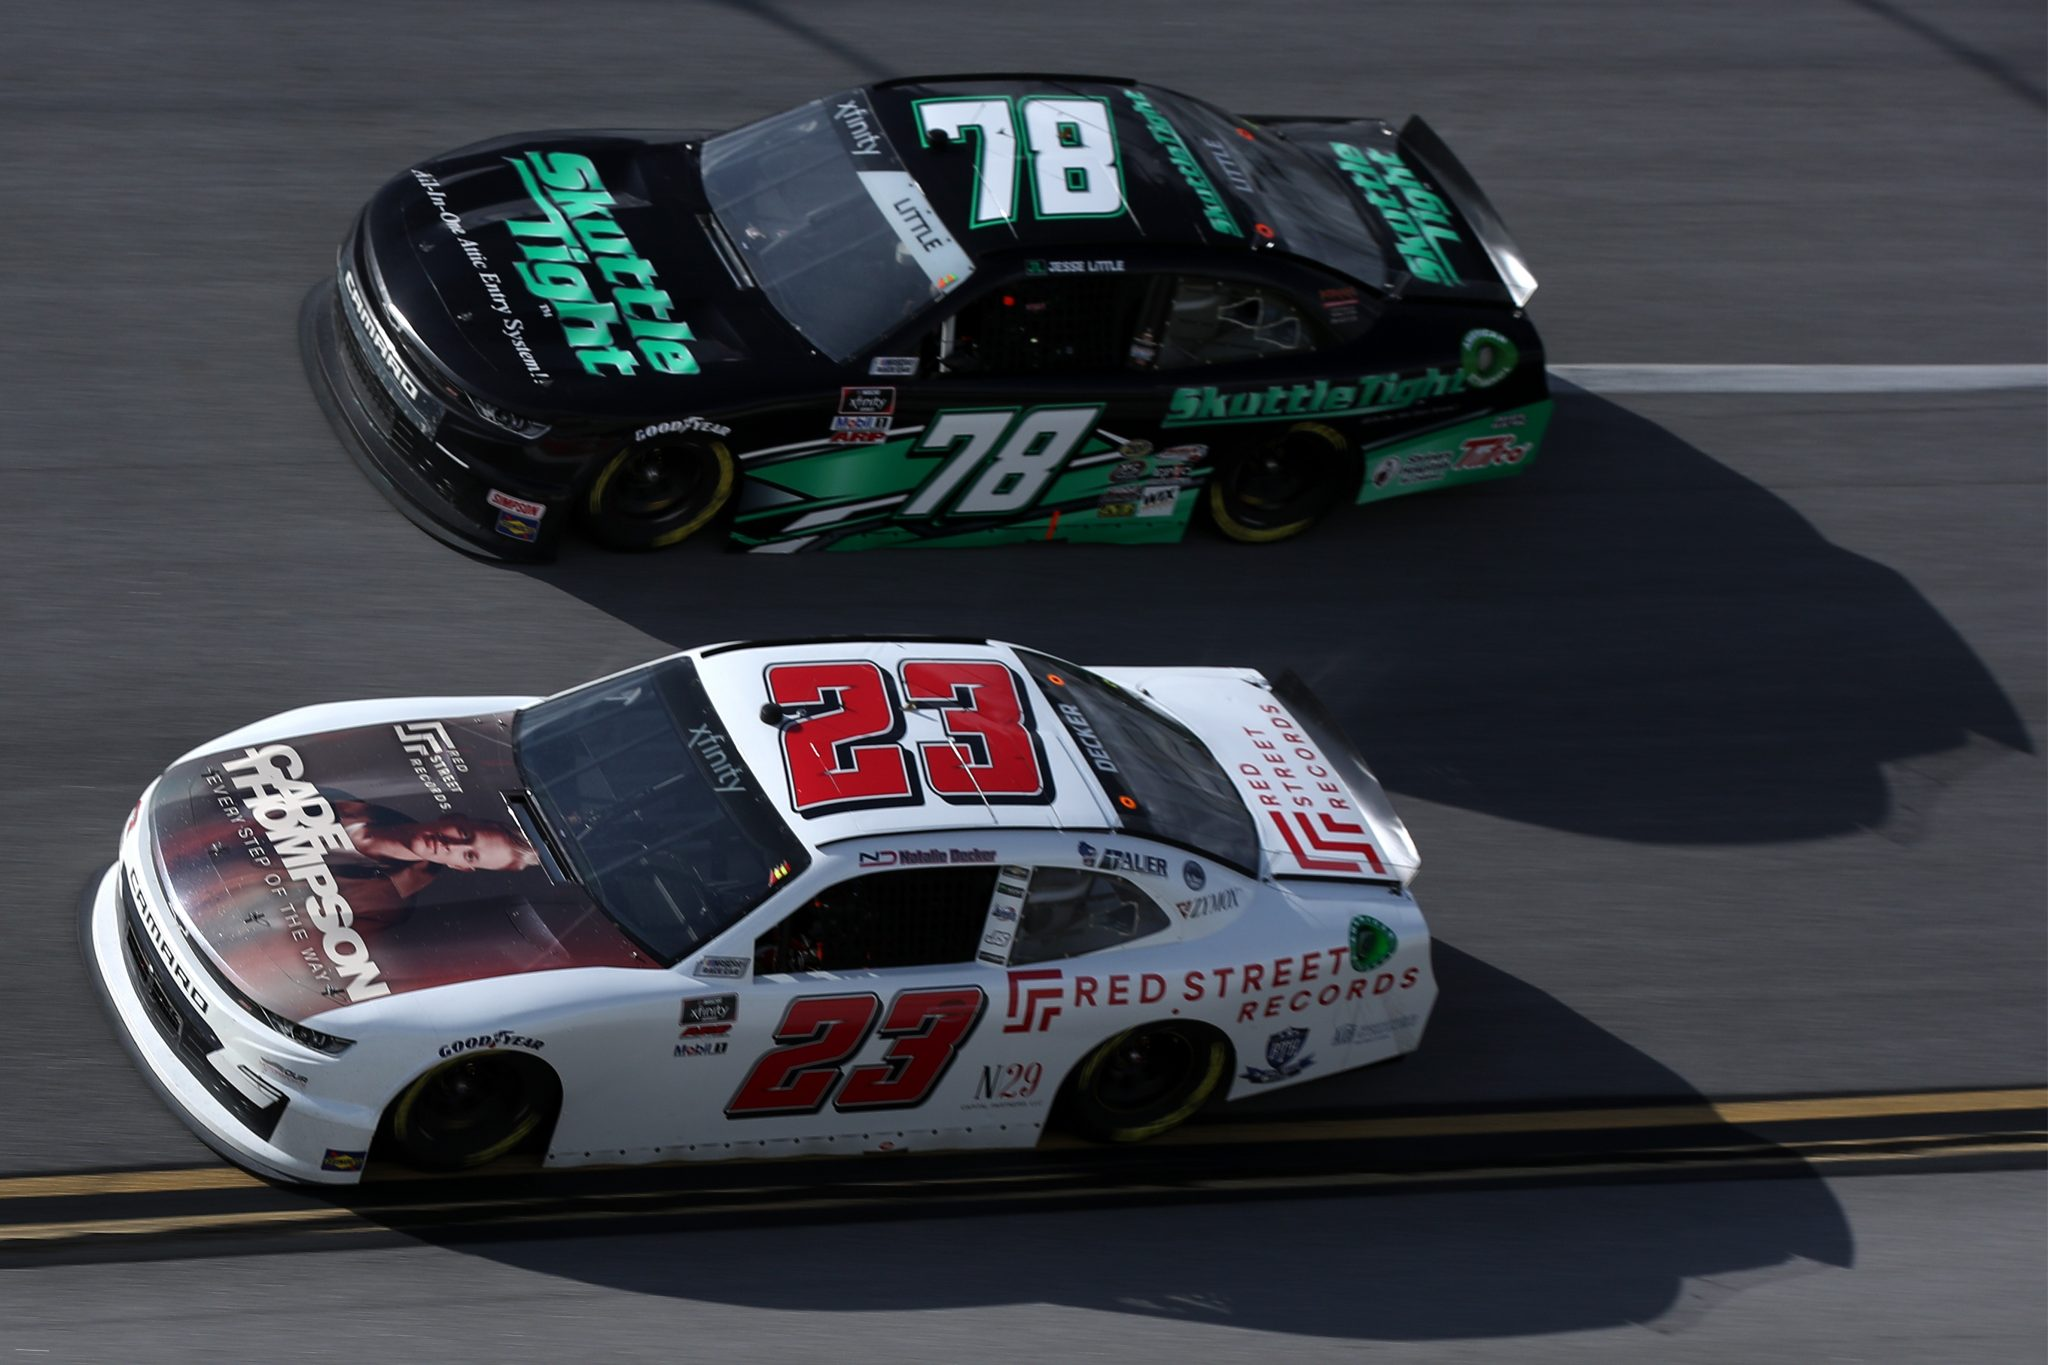 TALLADEGA, ALABAMA - APRIL 24: Natalie Decker, driver of the #23 Red Street Records Chevrolet, and Jesse Little, driver of the #78 Skuttle Tight Chevrolet, race during the NASCAR Xfinity Series Ag-Pro 300 at Talladega Superspeedway on April 24, 2021 in Talladega, Alabama. (Photo by Sean Gardner/Getty Images) | Getty Images